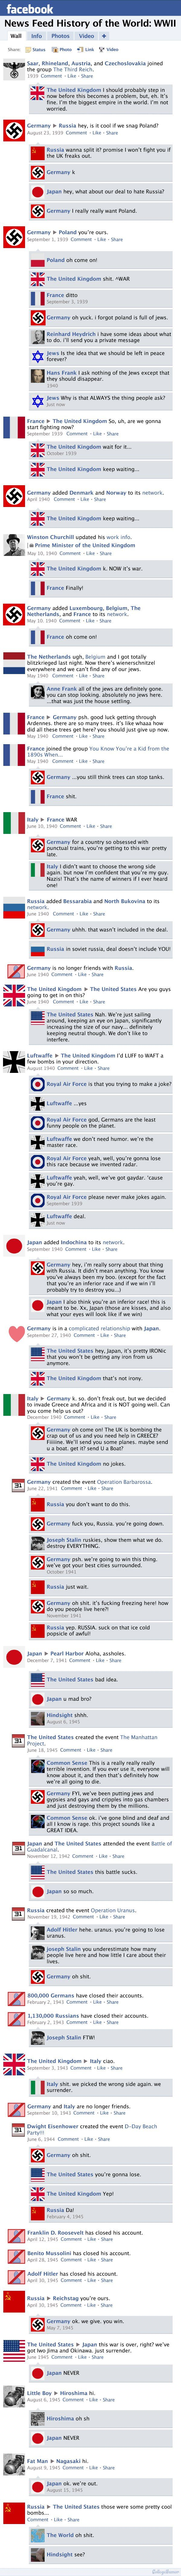 """Facebook News Feed History of the World: World War I to World War II"" by Susanna Wolff - CollegeHumor Article - Part 3"